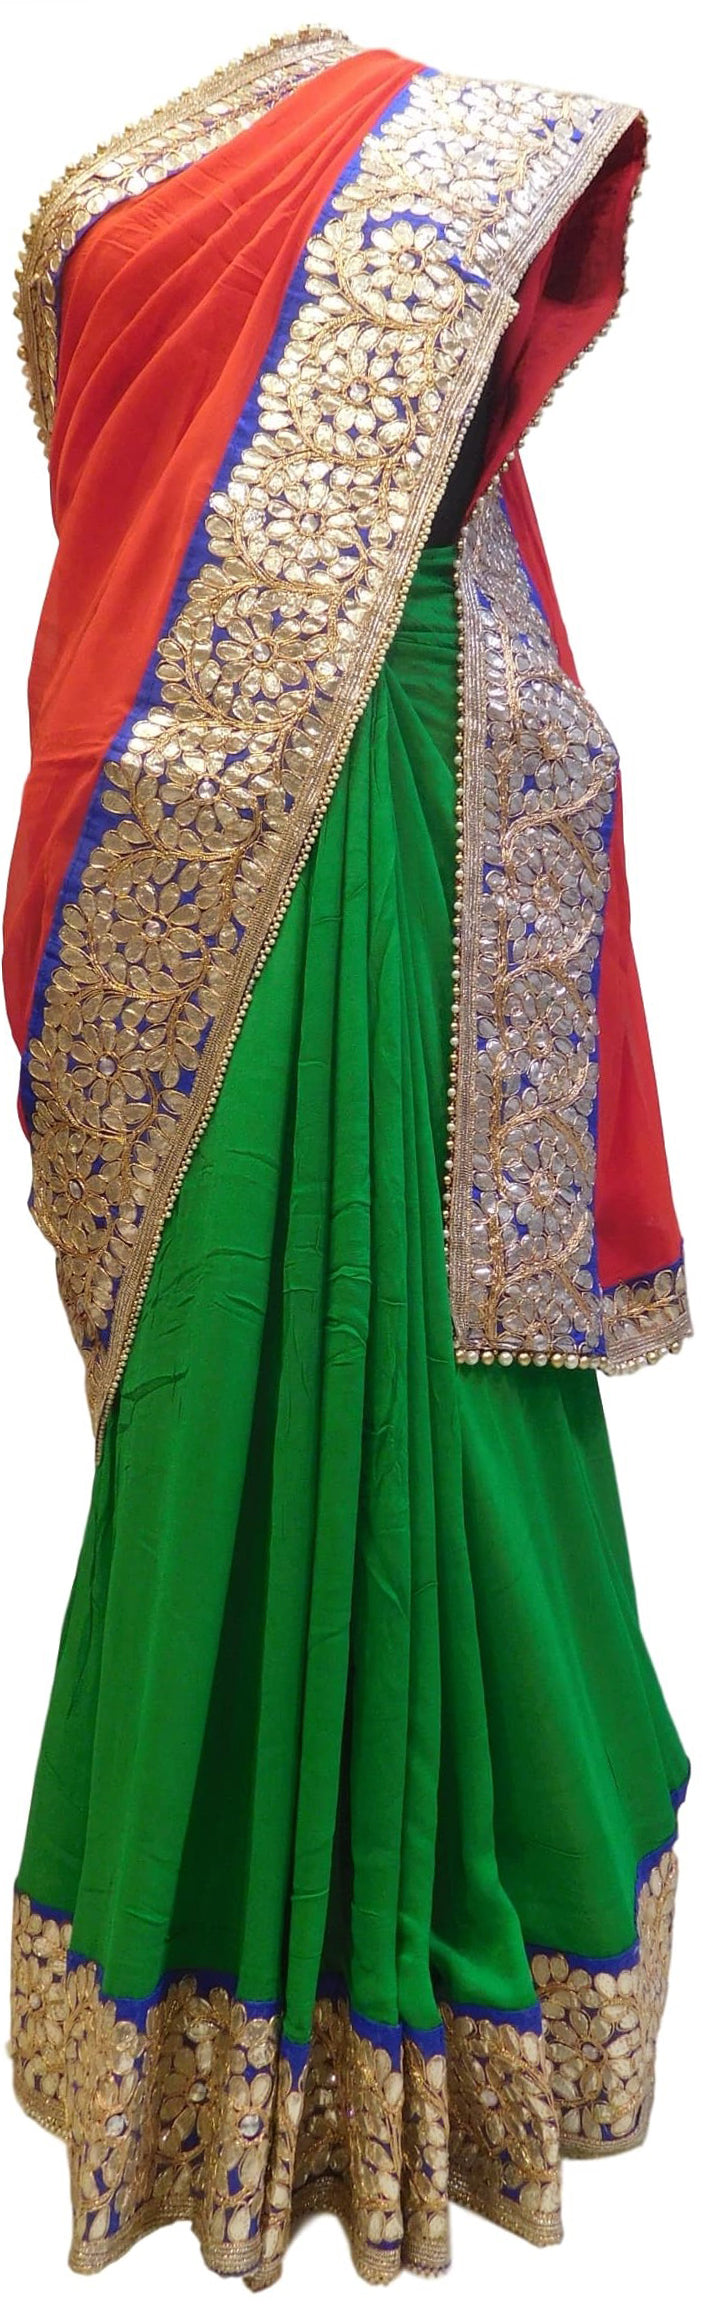 Bollywood Style Red & Green Gota Saree With Blue Border With Pearl Lace Sari